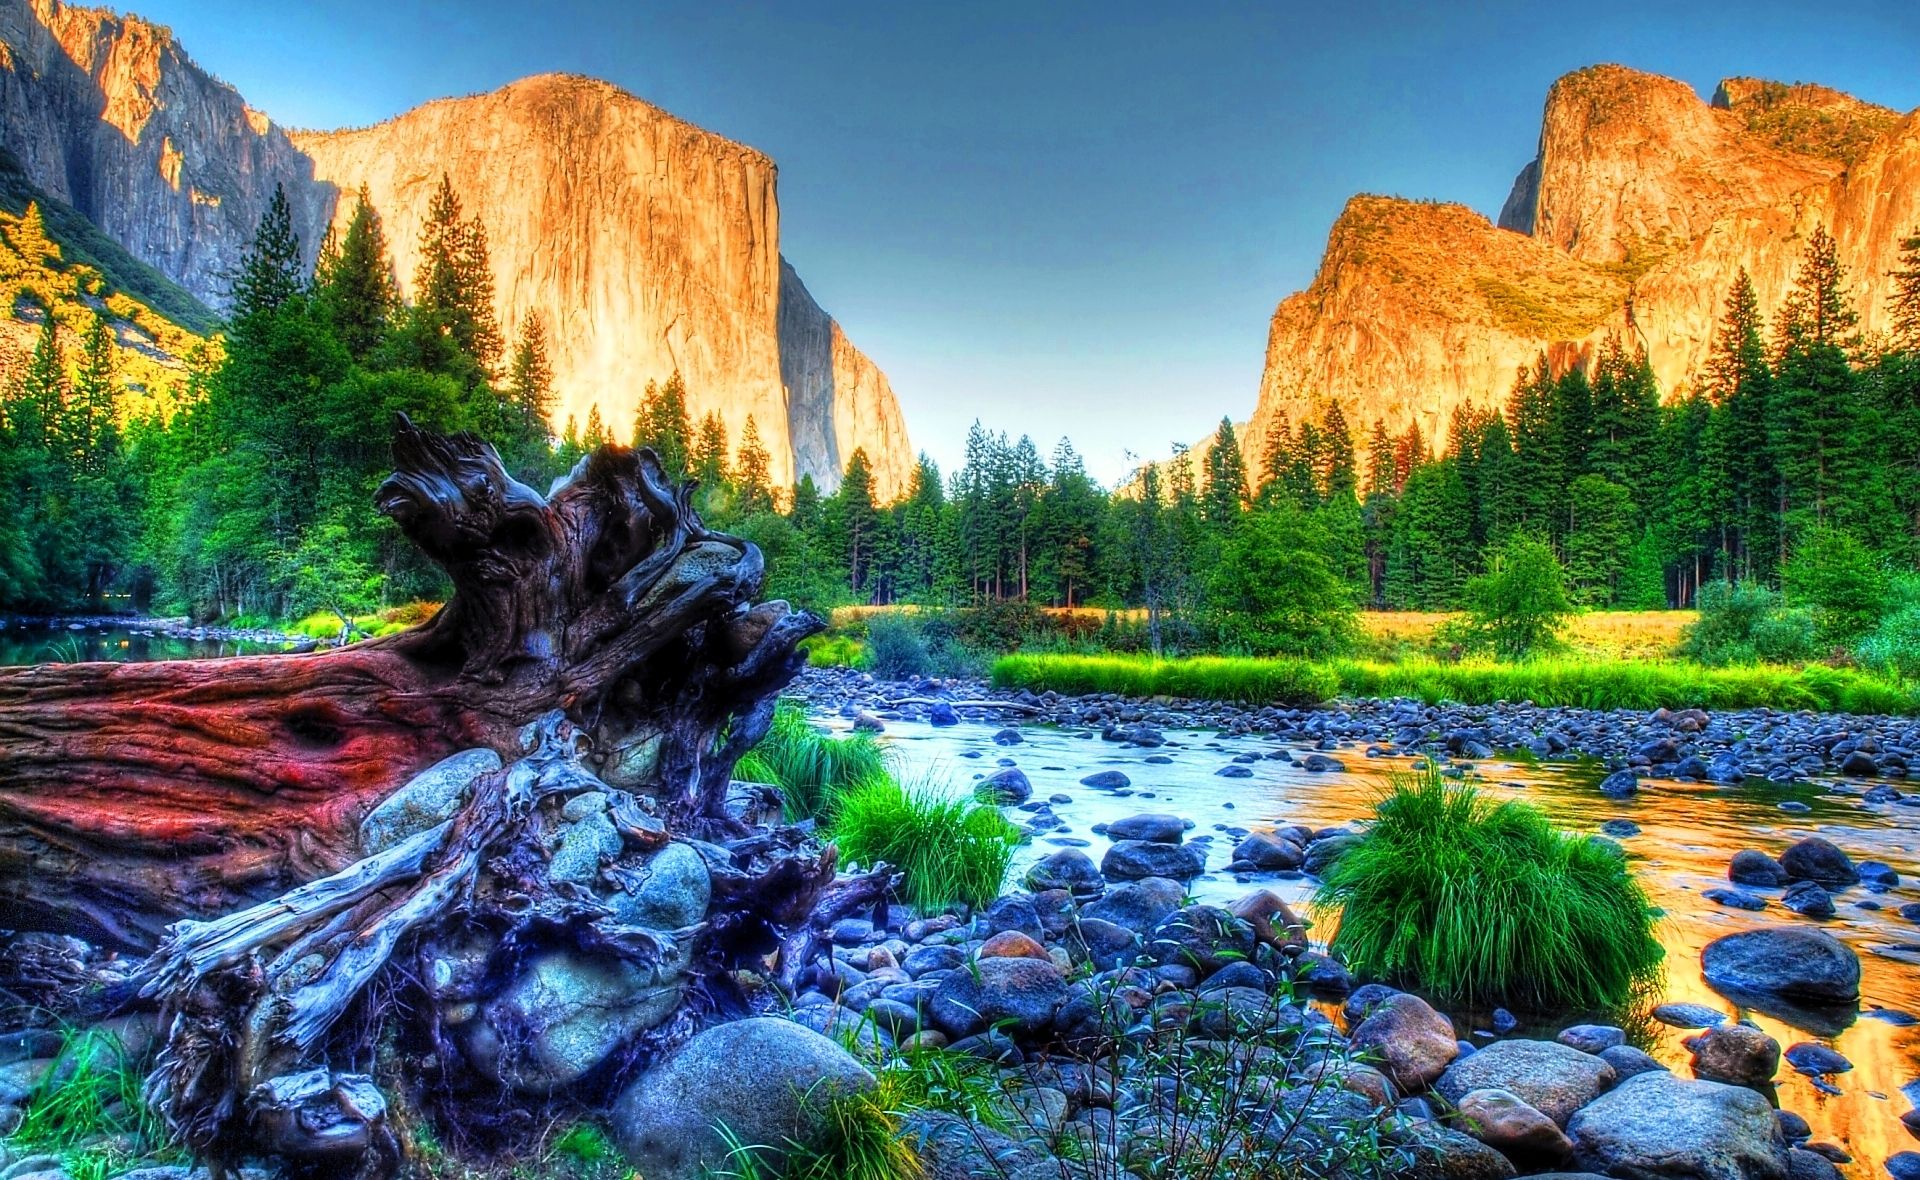 Hd wallpaper yosemite - Most Beautiful Yosemite National Park